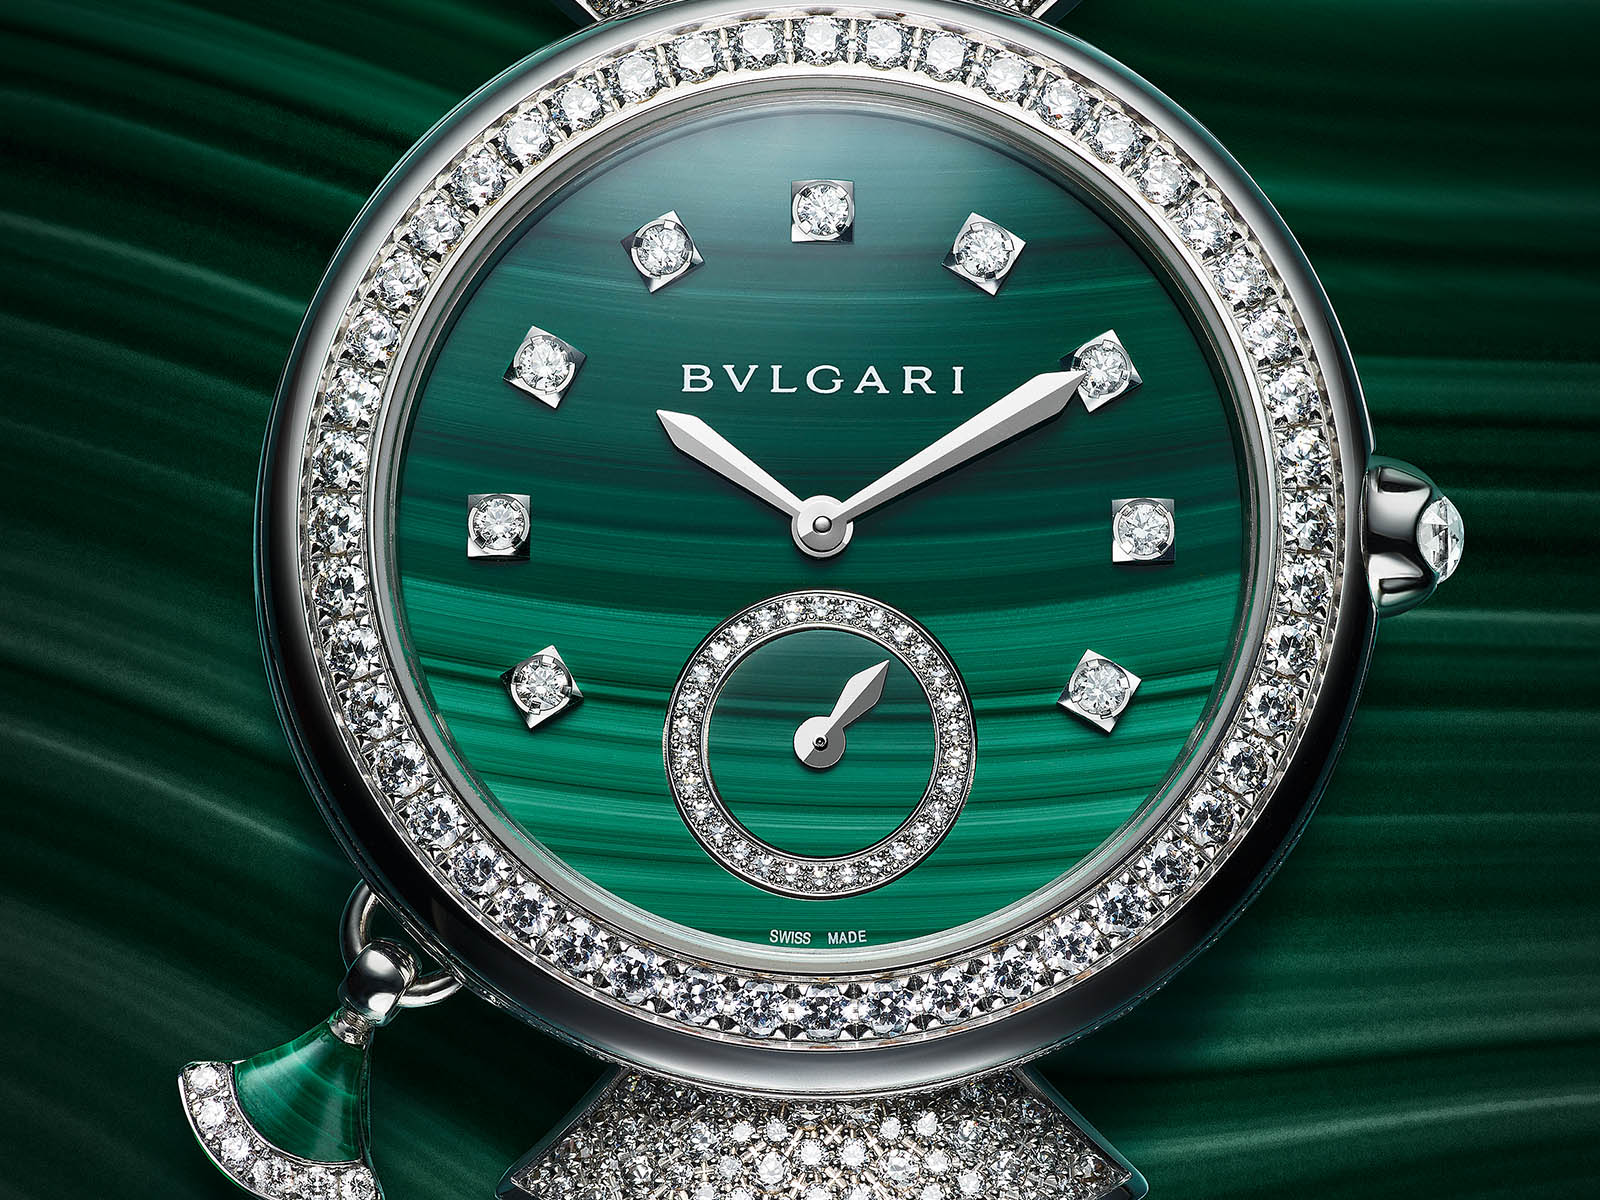 103282-bulgari-divas-dream-finissima-minute-repeater-malachite-1.jpg